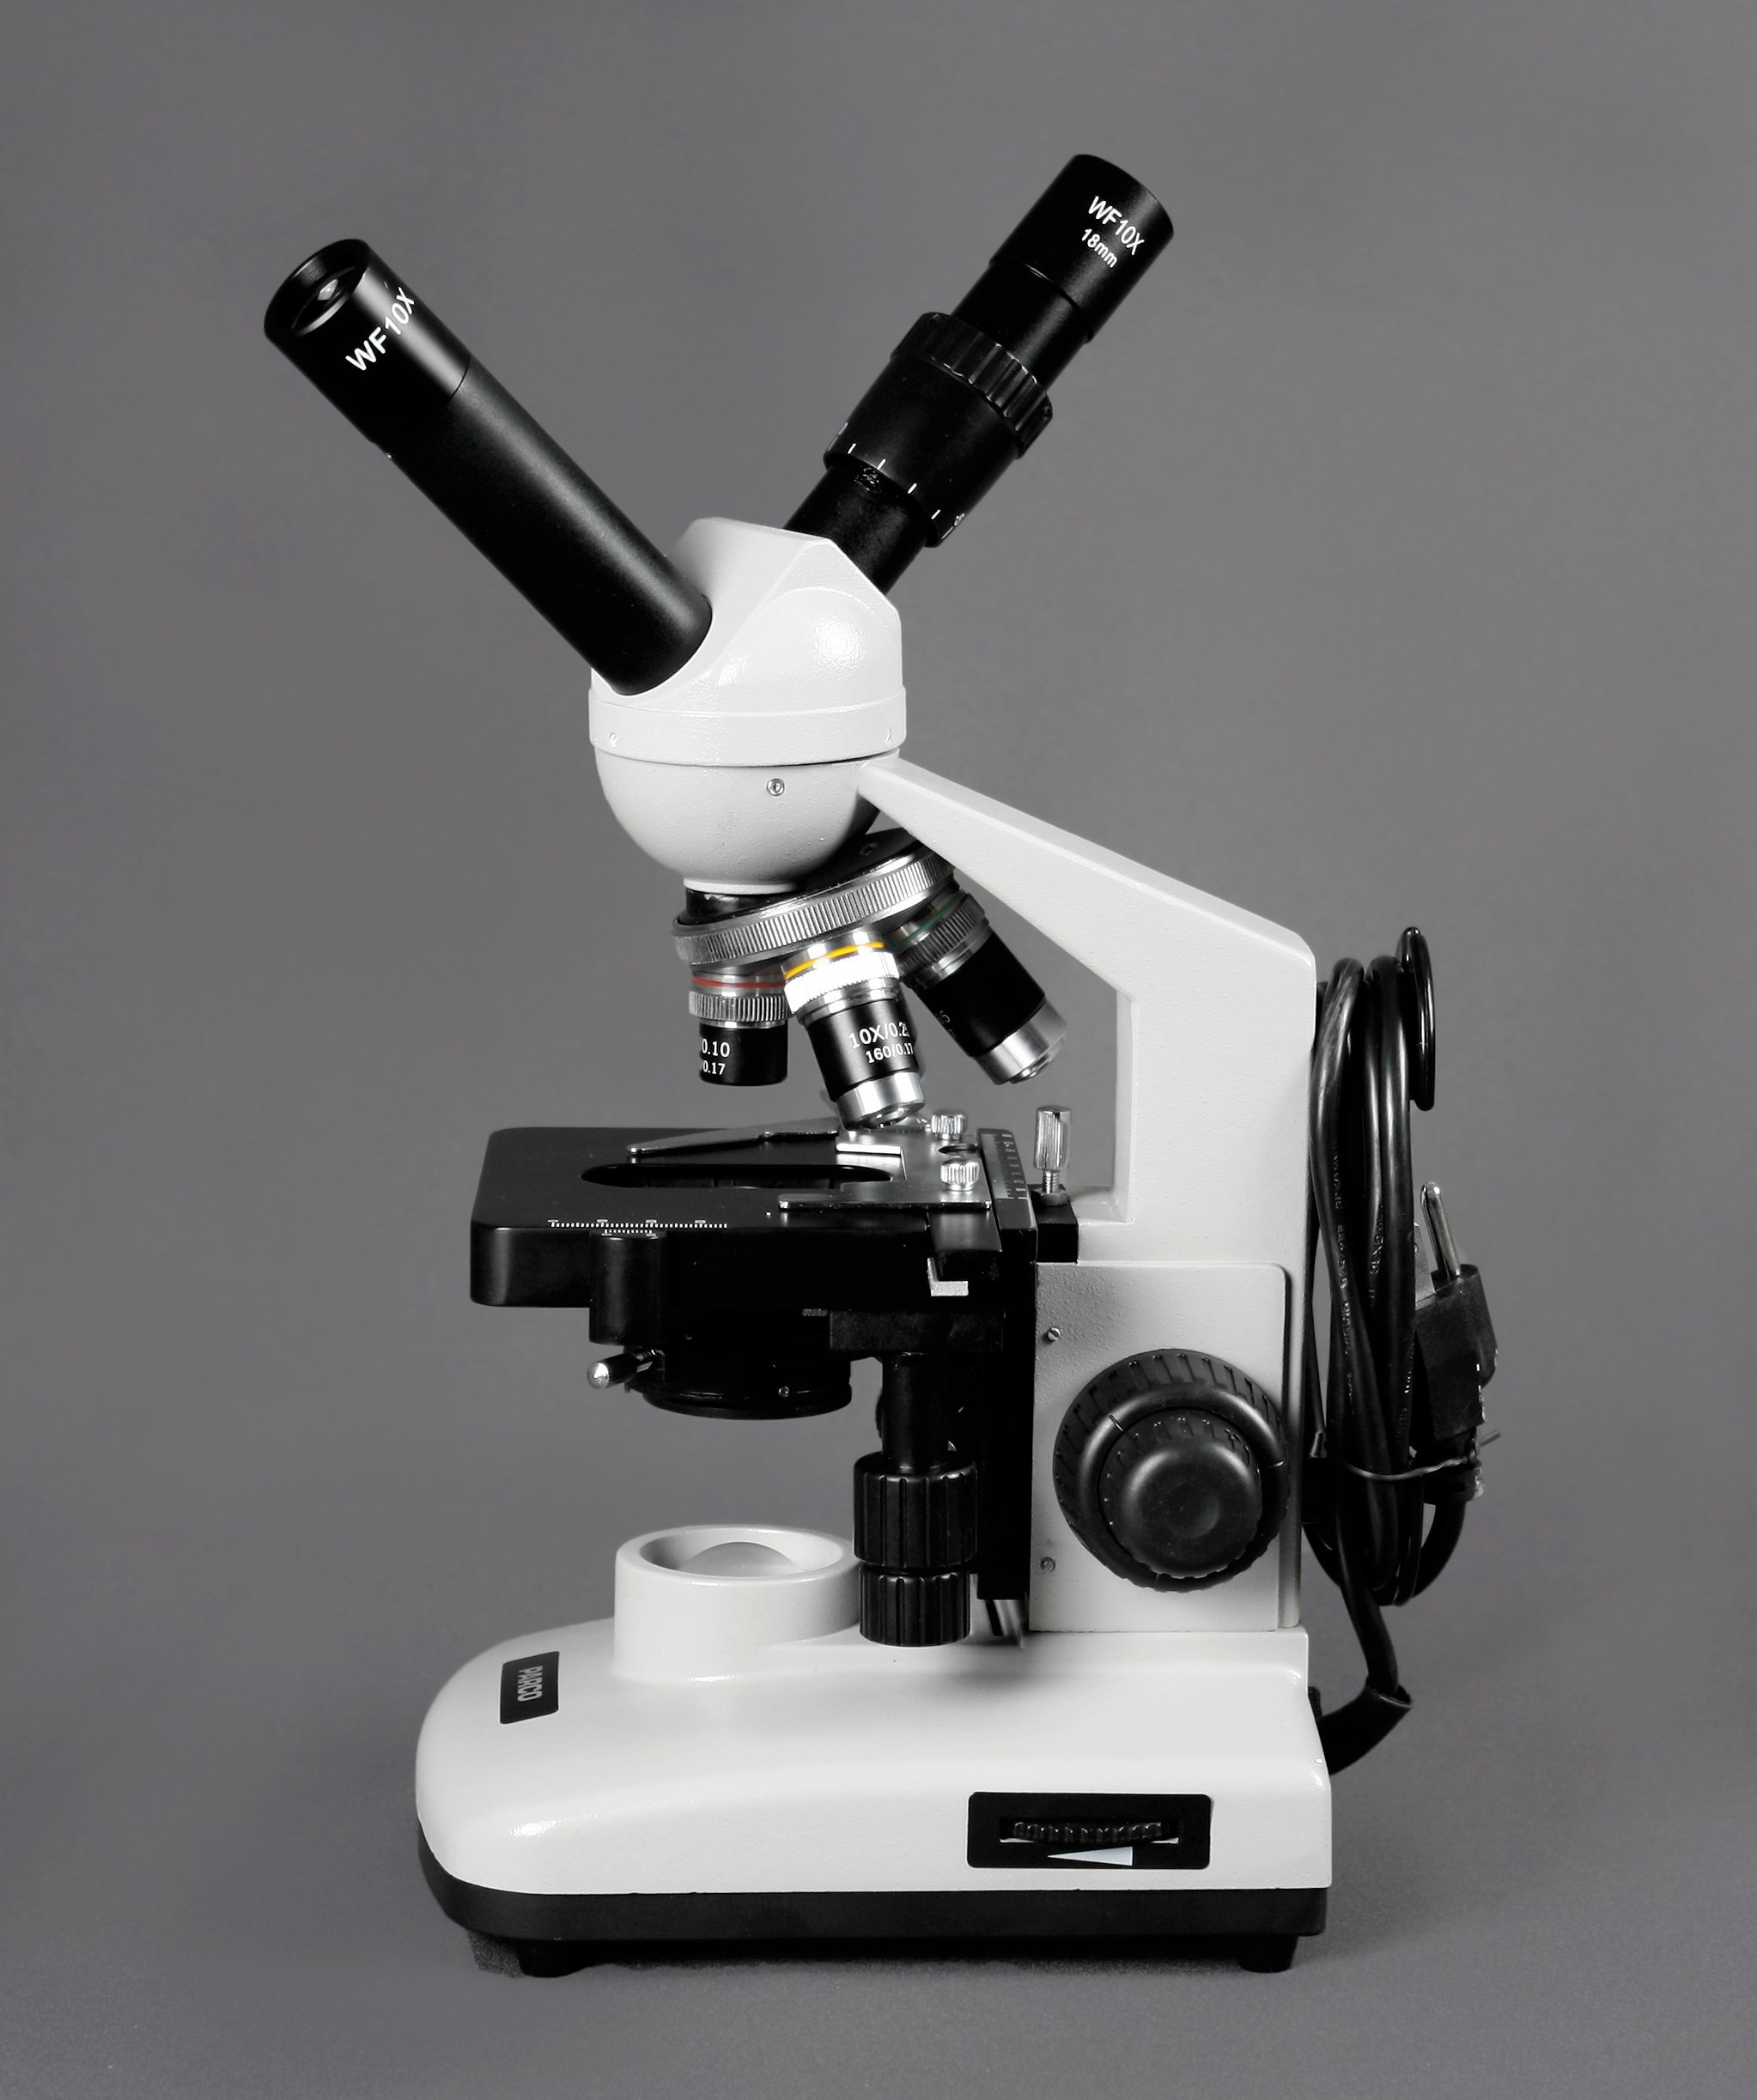 Parco Scientific PBS-500 Dual View Compound Microscope, 10x WF Eyepiece, 40x—1000x Magnification, LED Illumination, 1.25 NA Abbe Condenser, Coaxial Coarse & Fine Focus, Mechanical Stage by Parco Scientific (Image #4)